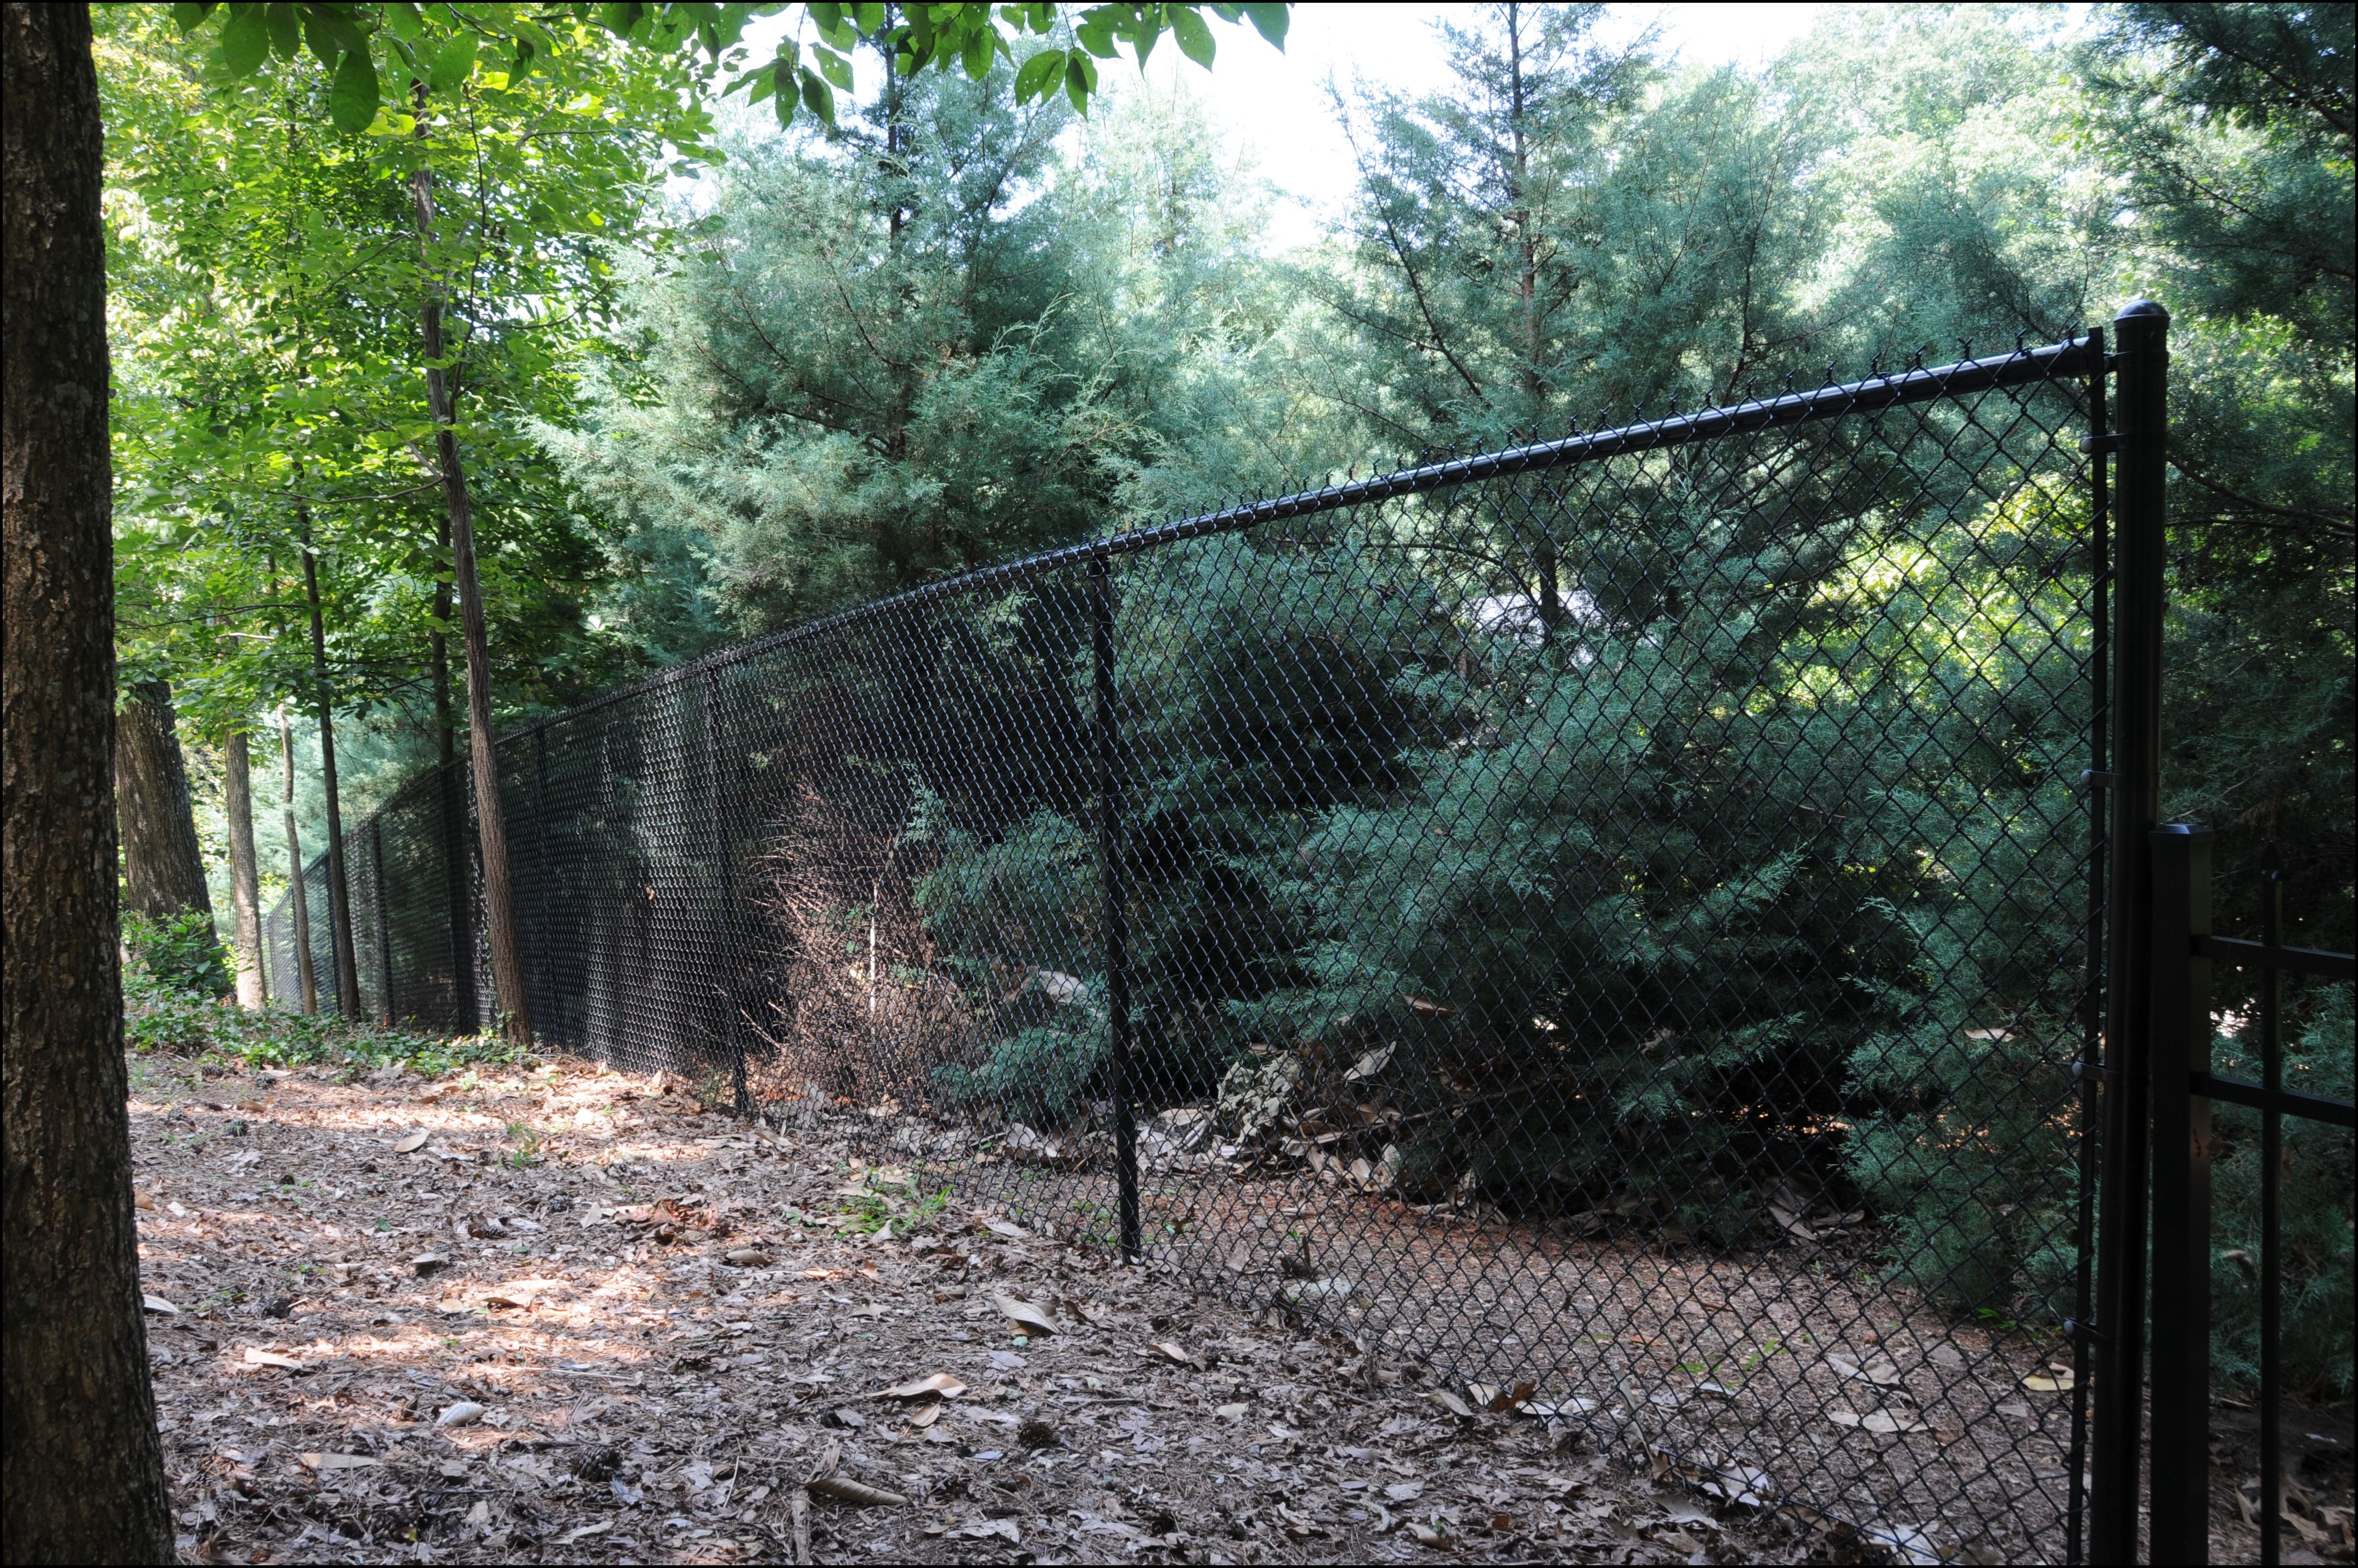 5 Foot Black Chain Link Fence Black Chain Link Fence Chain Link Fence Fence Design